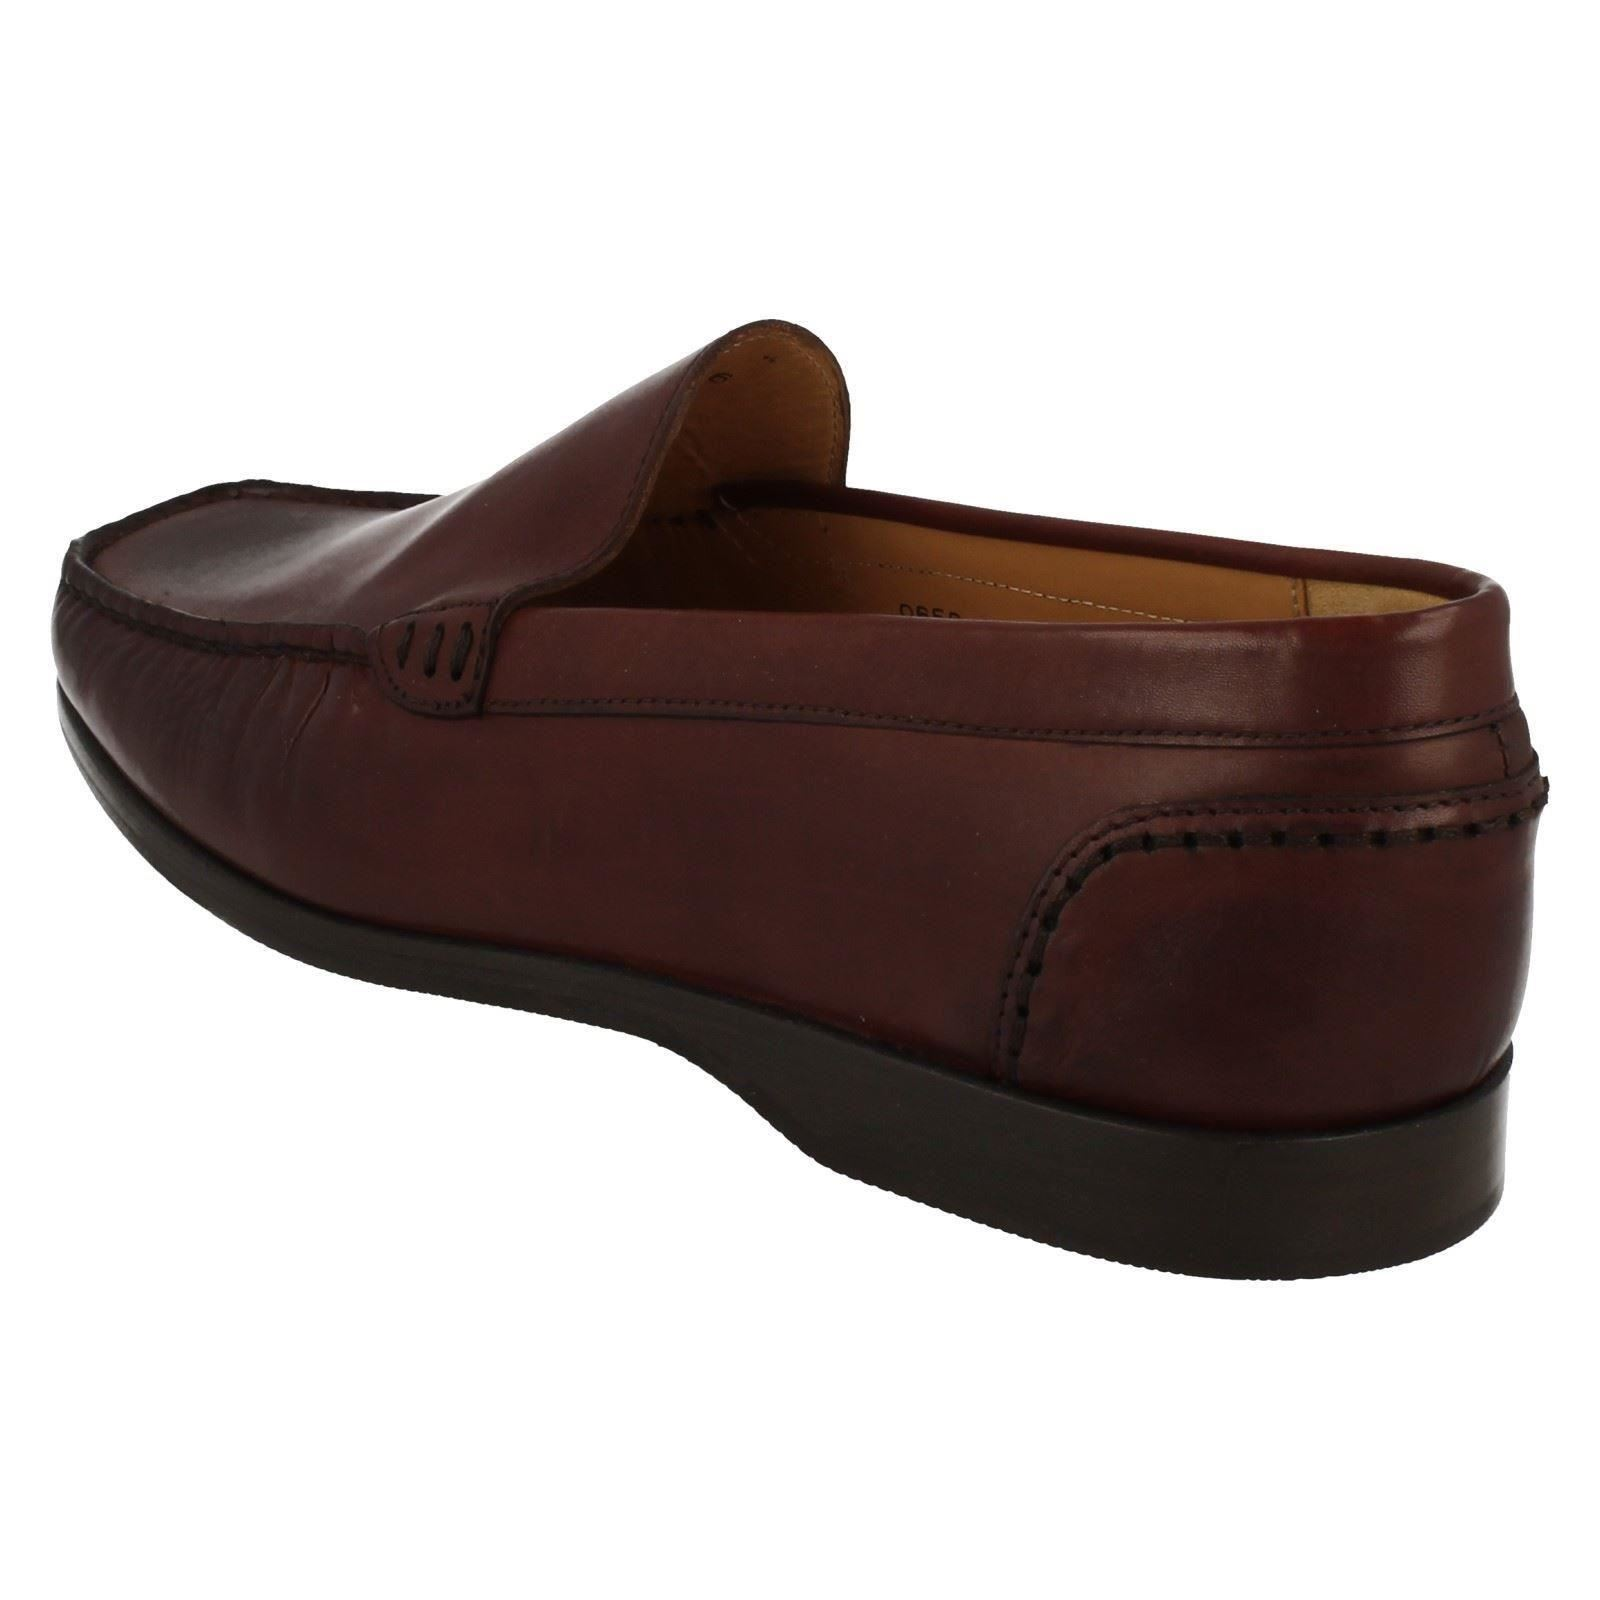 Uomo Grenson Moccasin Schuhes Cardiff Cardiff Schuhes 39c7be